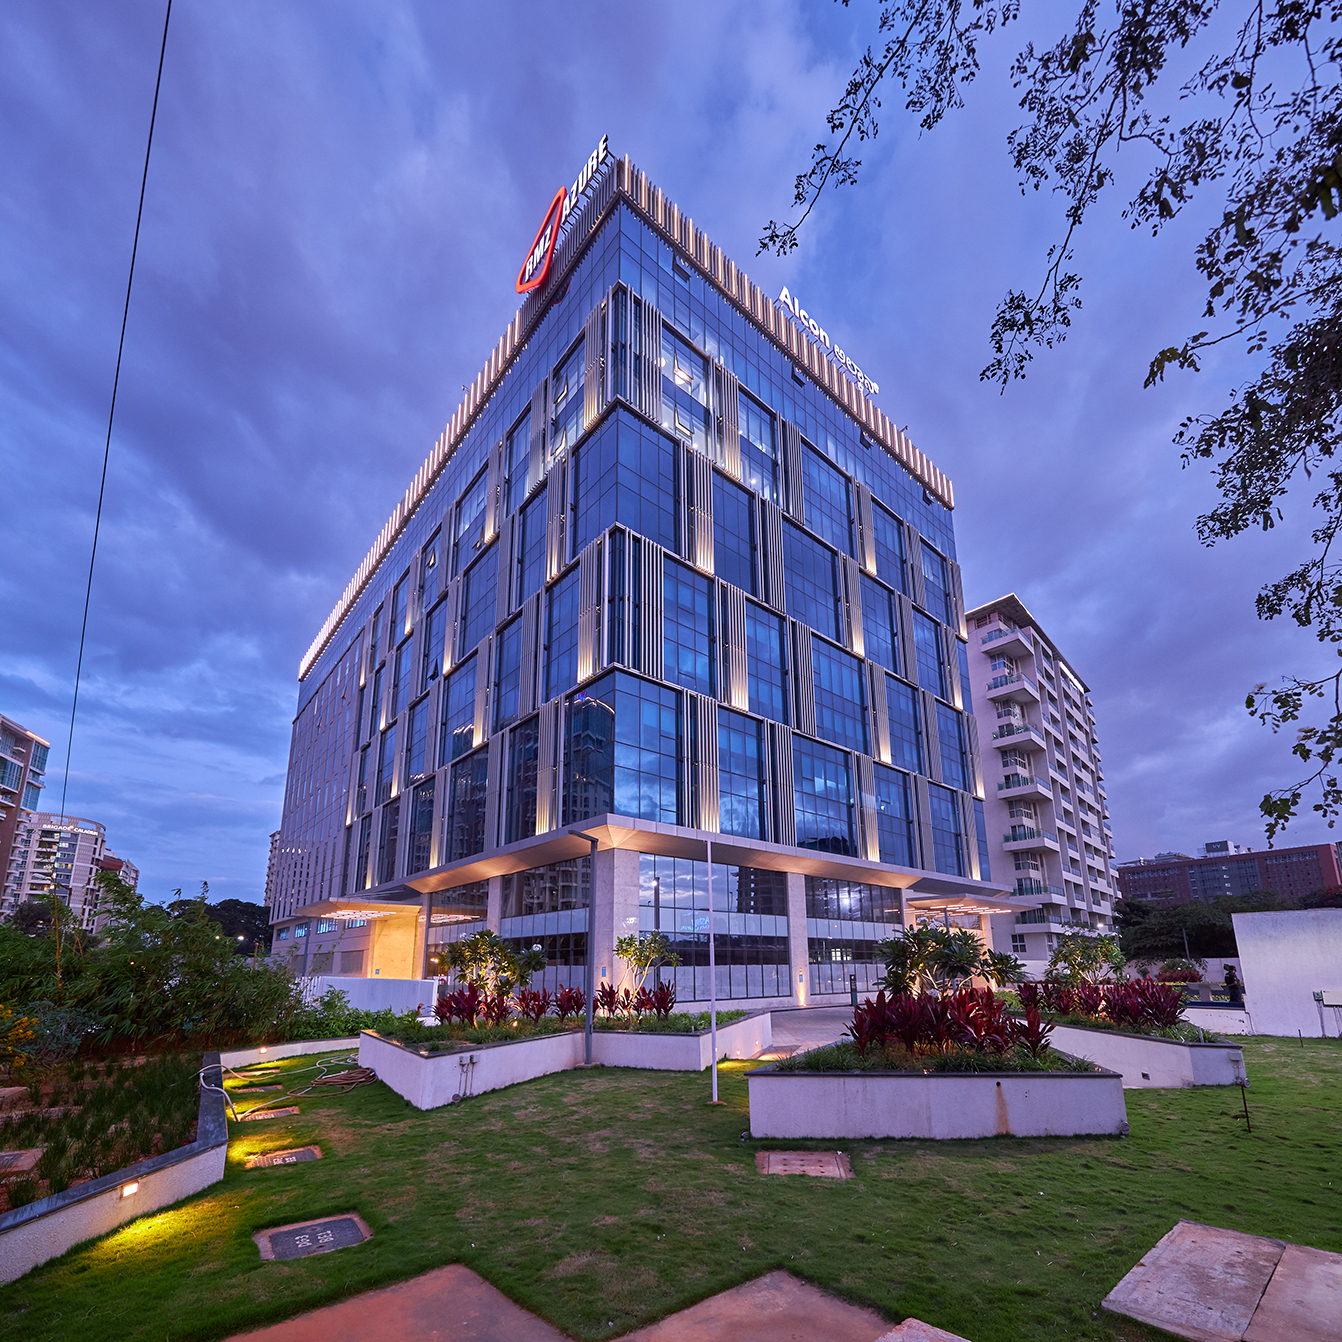 A modern glass office building in India